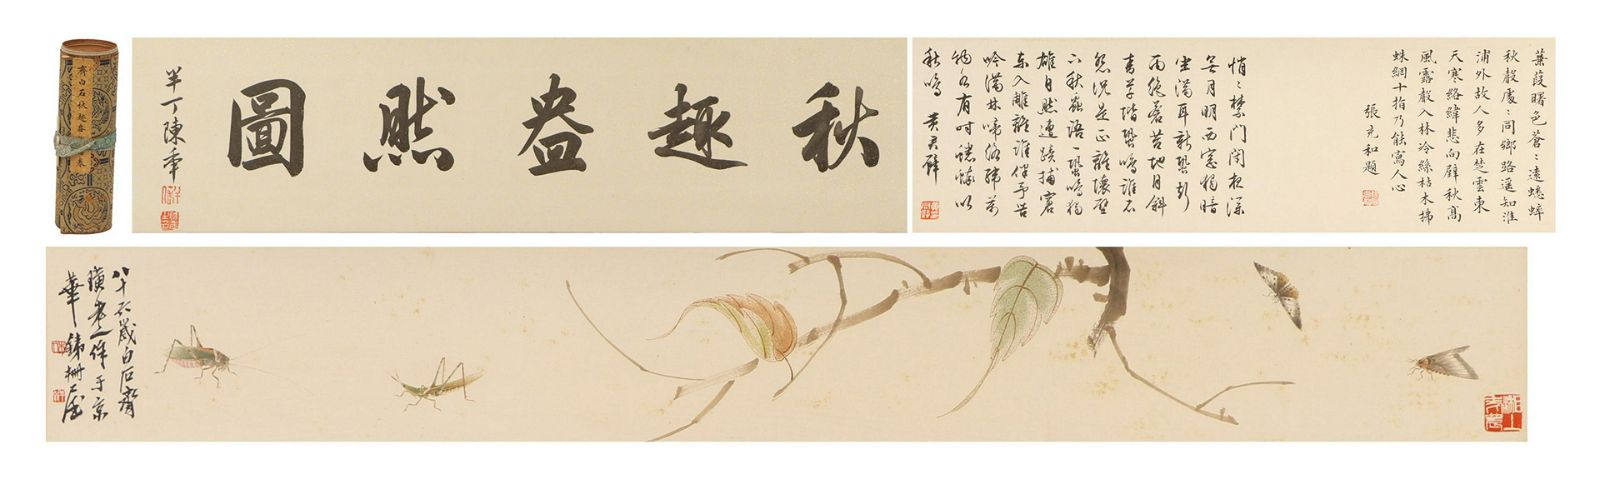 A Chinese Painting Hand-scroll of Insects